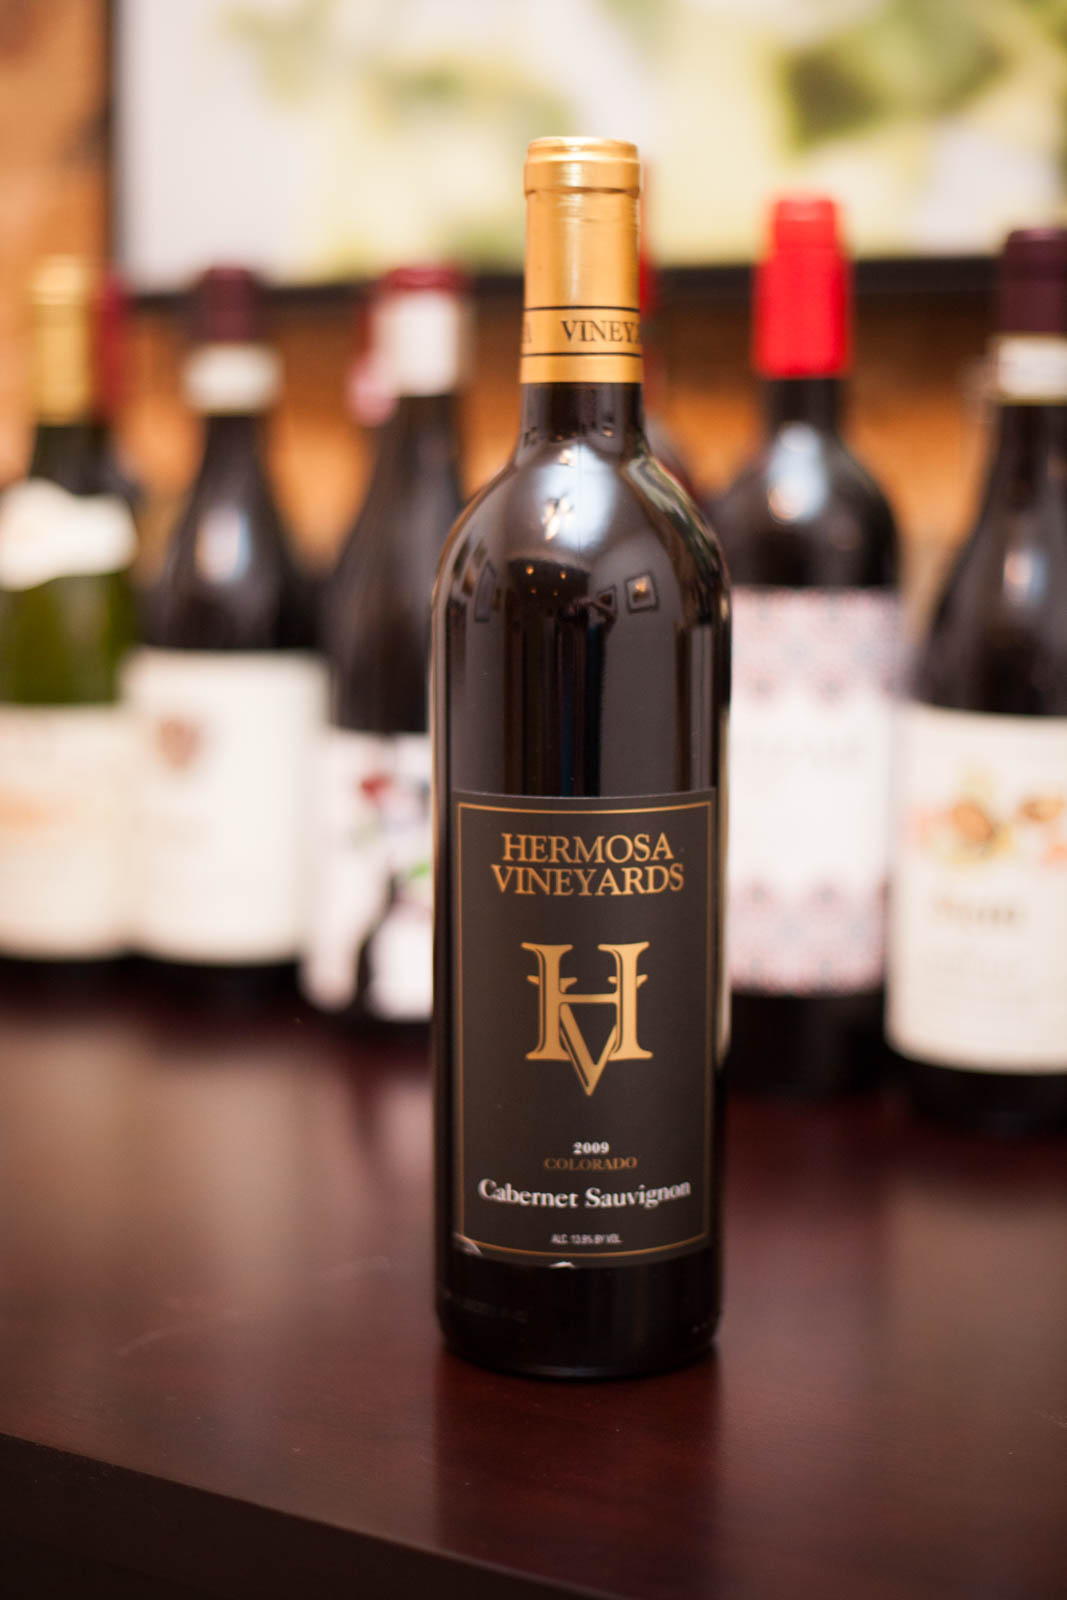 2009 Hermosa Vineyards Cabernet Sauvignon